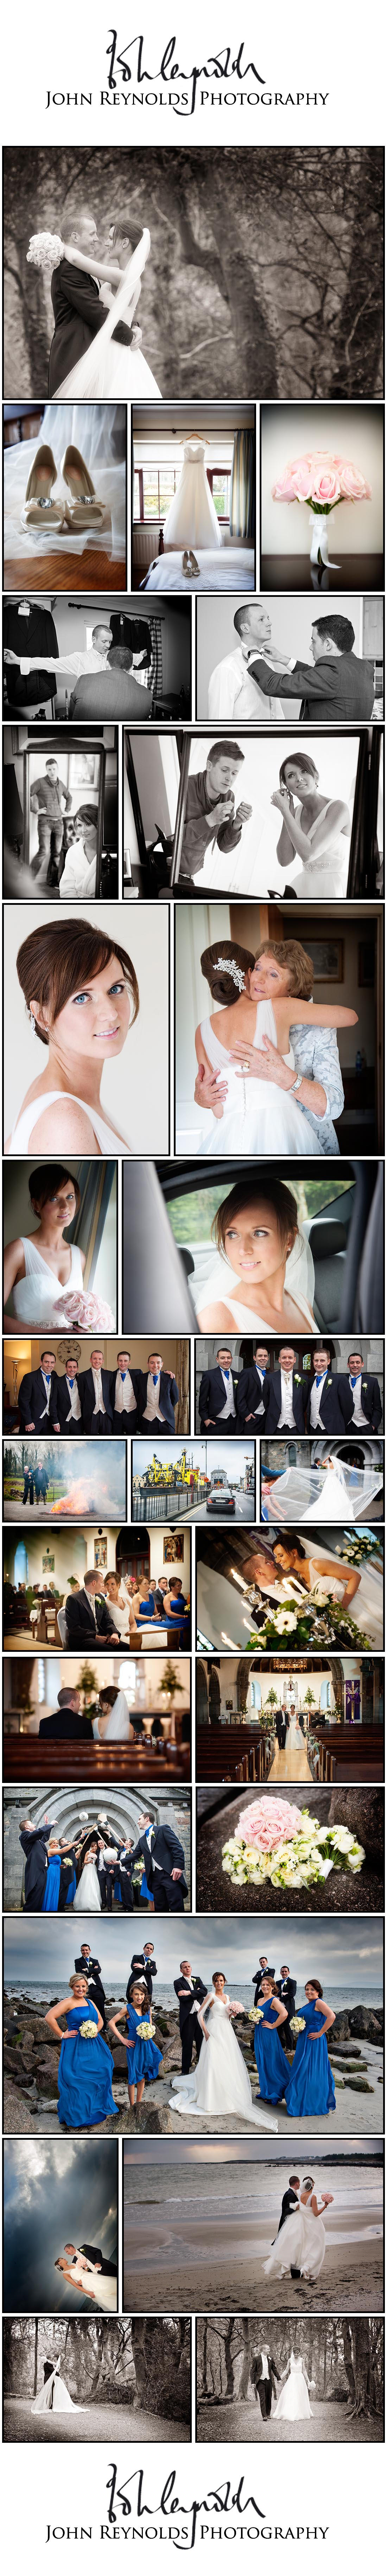 Sinead & Kieran Collage Blog